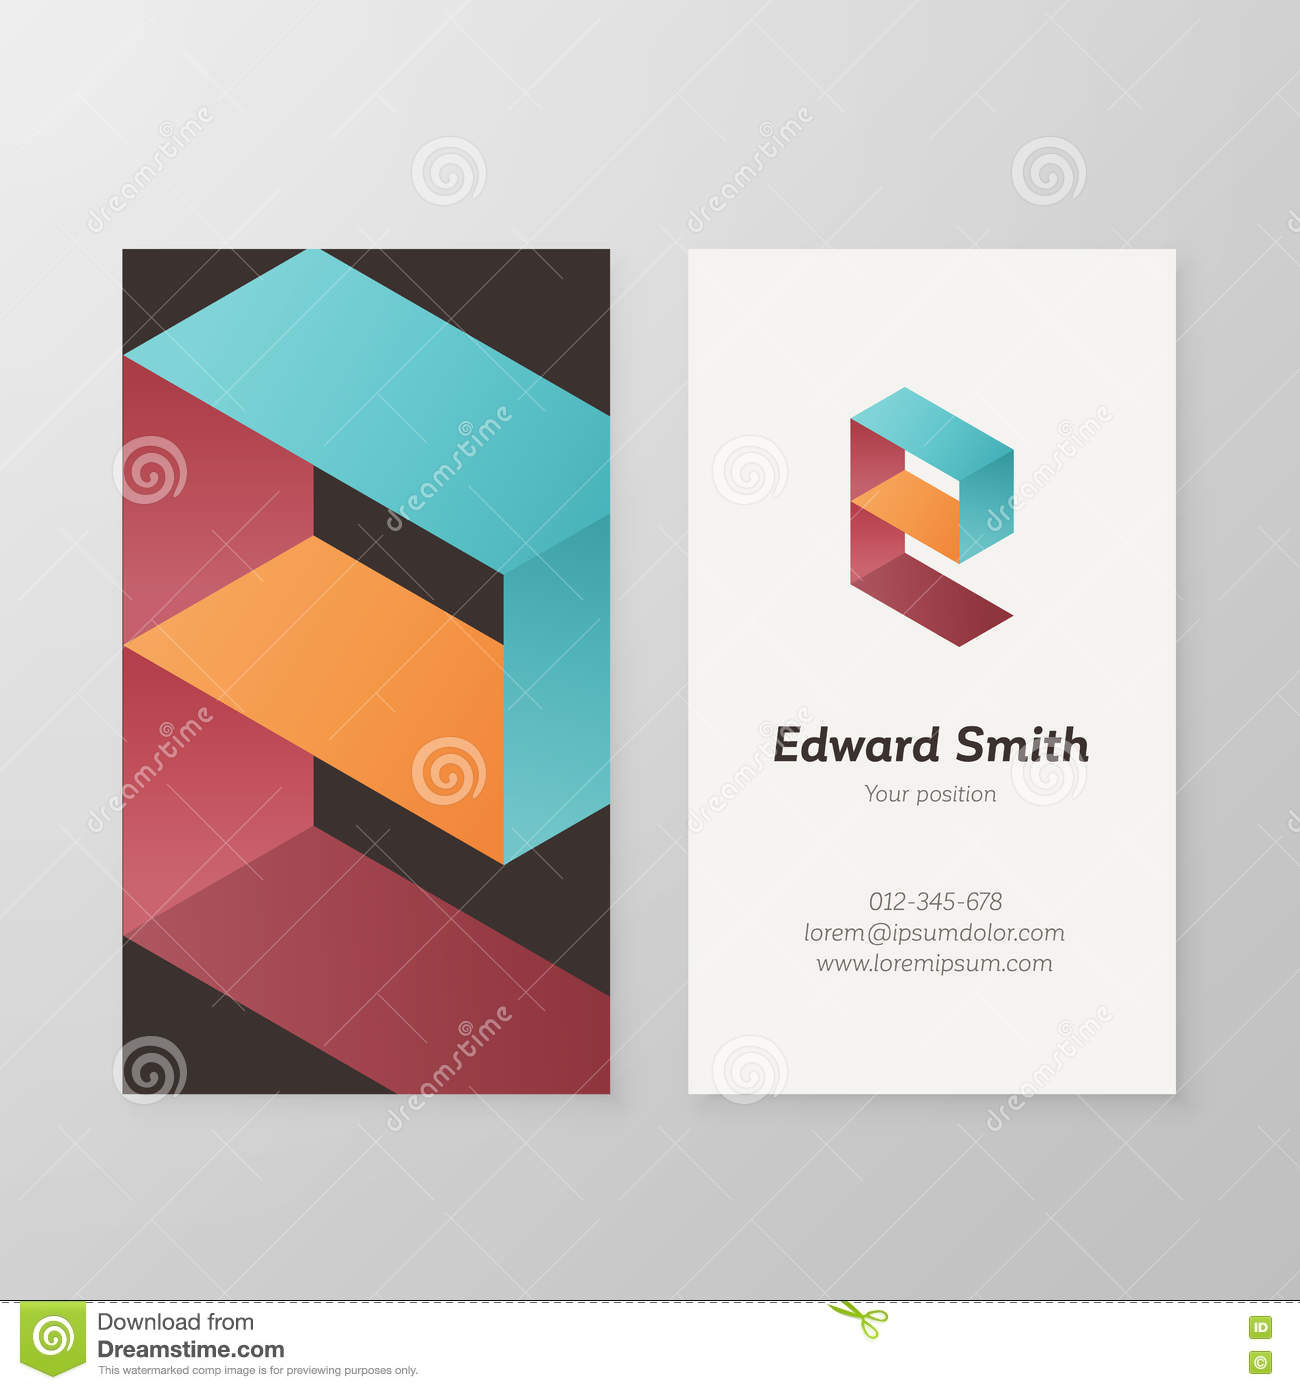 Business card isometric logo letter r template stock vector business card isometric logo letter e template stock photos colourmoves